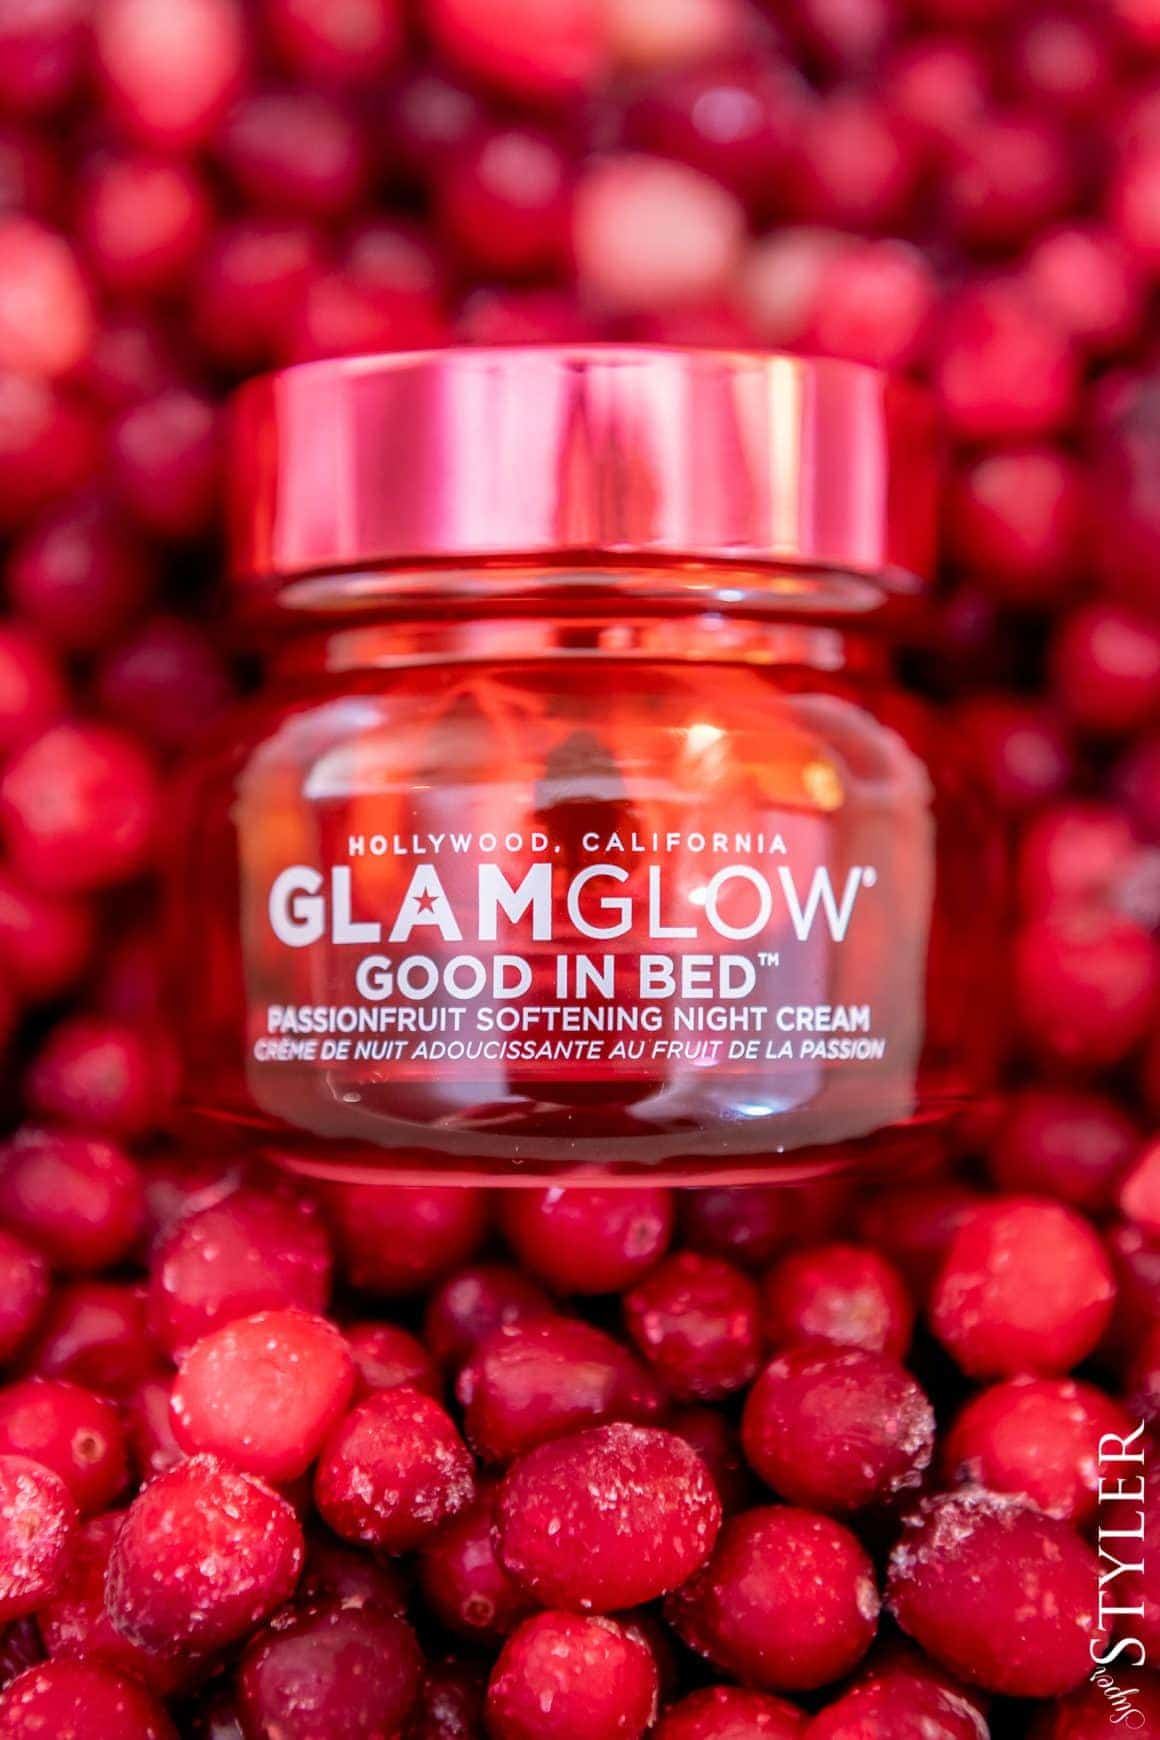 Glamglow Good in Bed